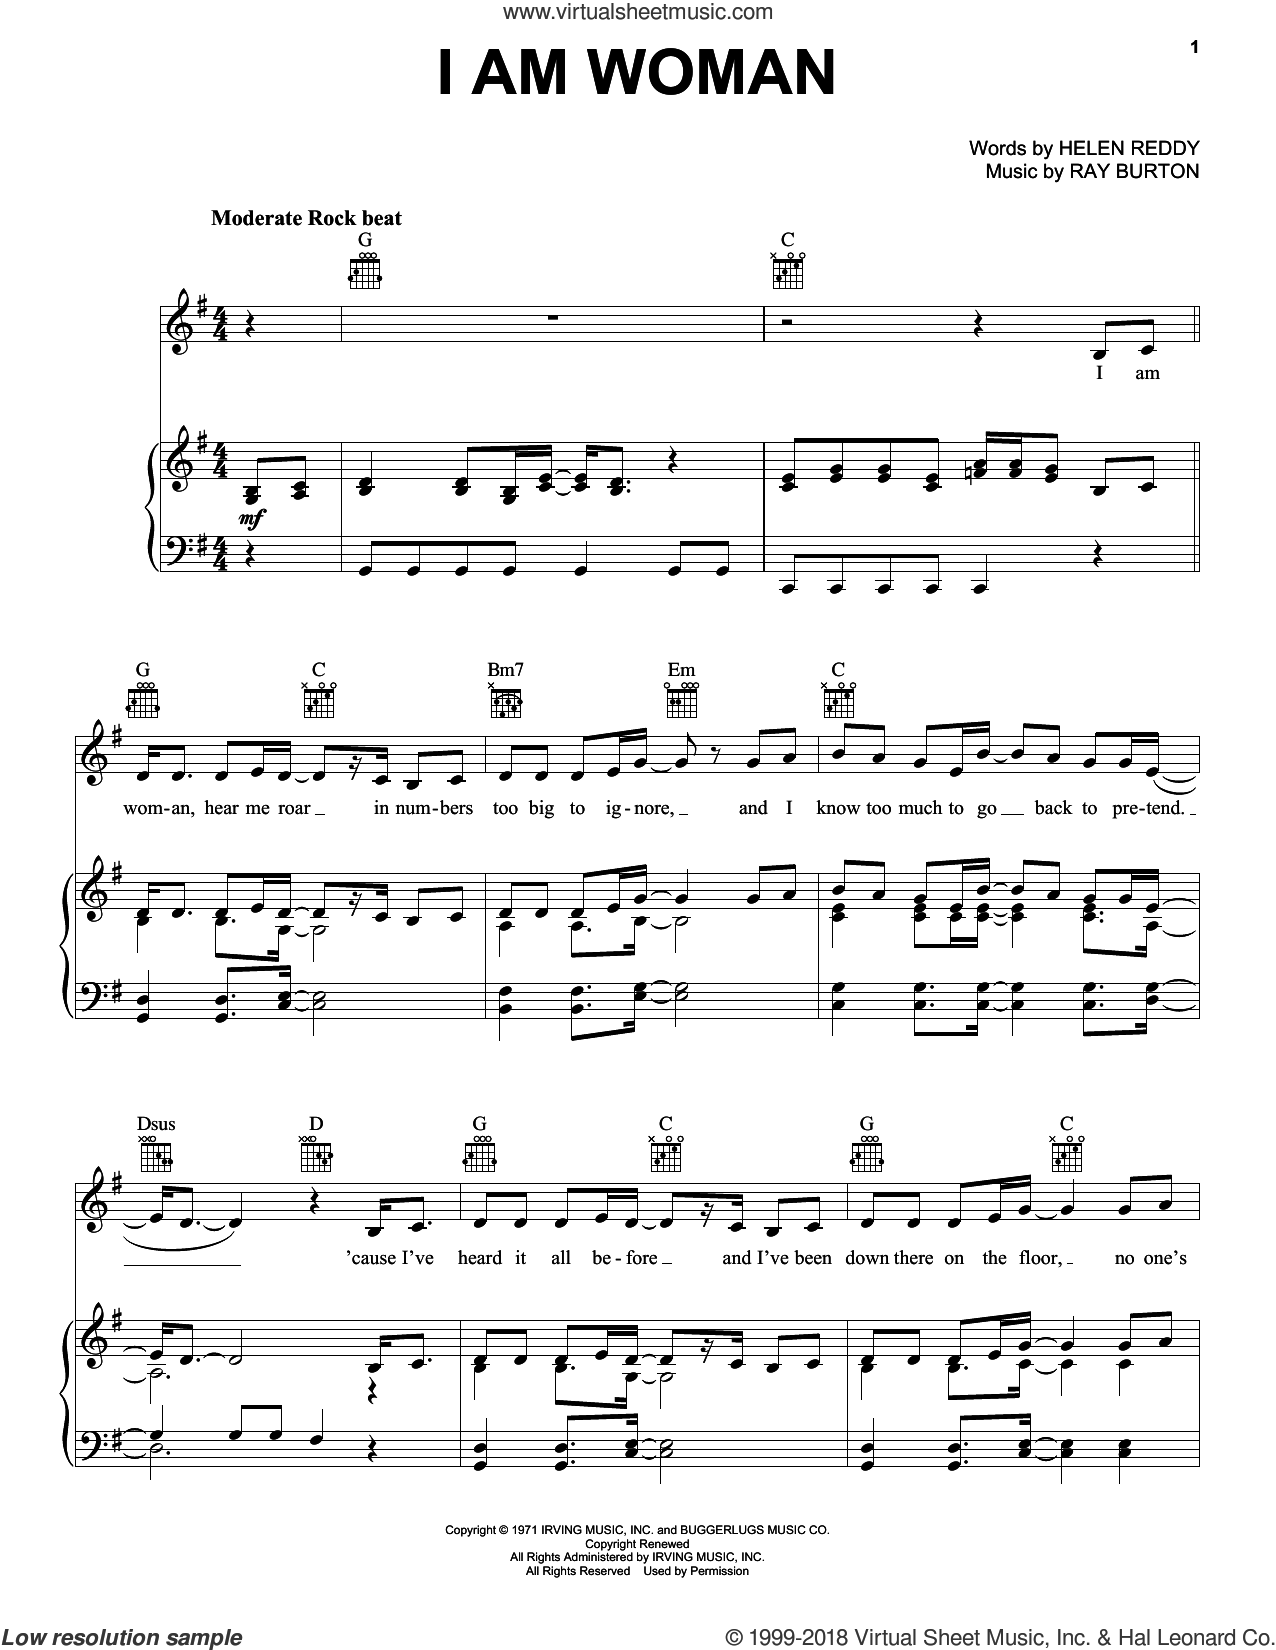 I Am Woman sheet music for voice, piano or guitar by Ray Burton